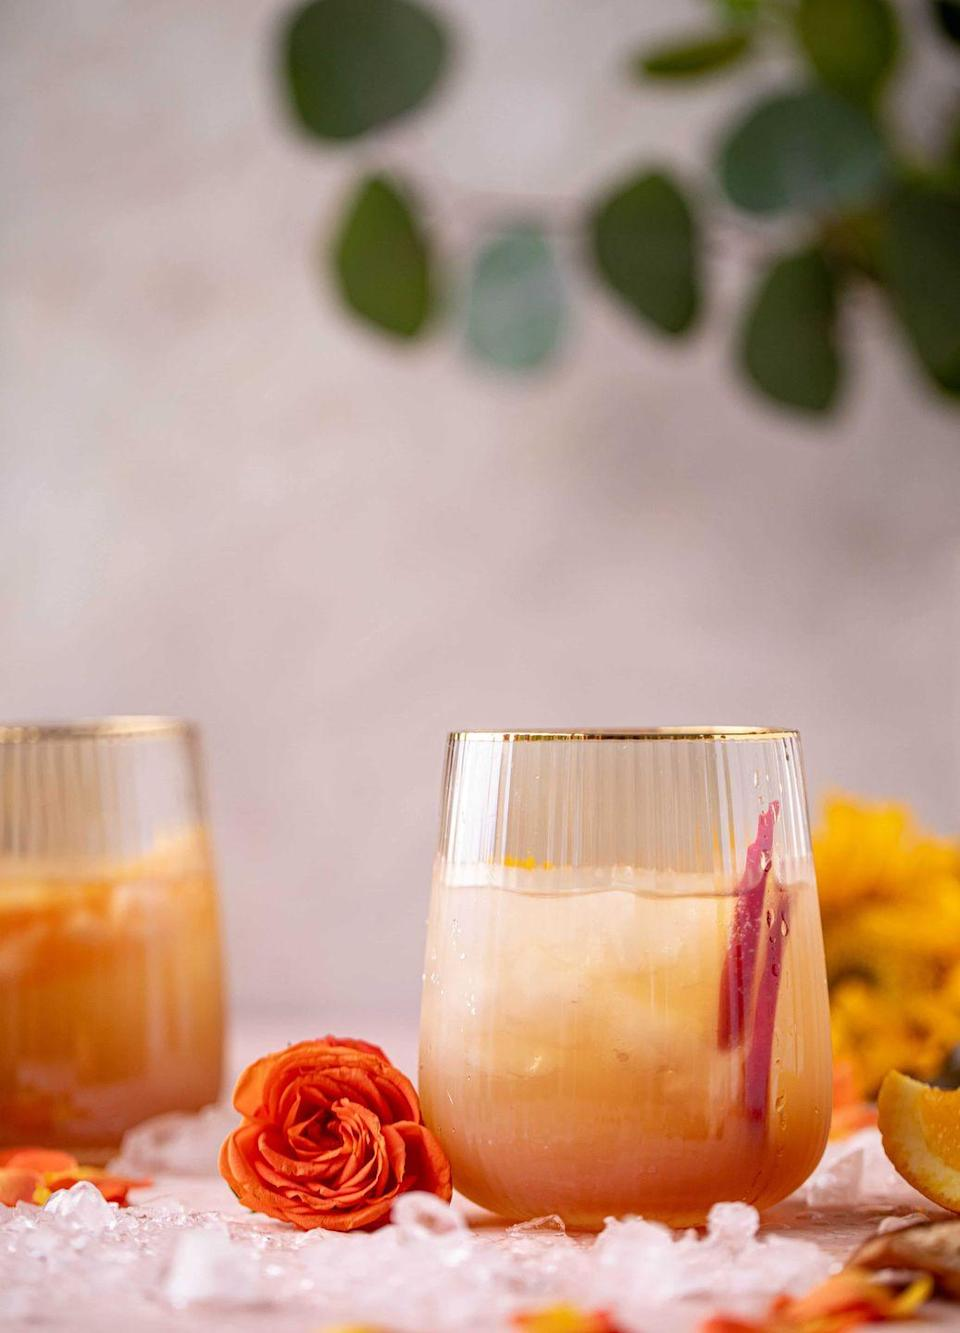 """<p>This Prosecco-based spritzer was simply made for those warm, sunny autumn afternoons. </p><p><a class=""""link rapid-noclick-resp"""" href=""""https://www.howsweeteats.com/2019/09/apple-cider-spritz/"""" rel=""""nofollow noopener"""" target=""""_blank"""" data-ylk=""""slk:GET THE RECIPE"""">GET THE RECIPE</a></p>"""